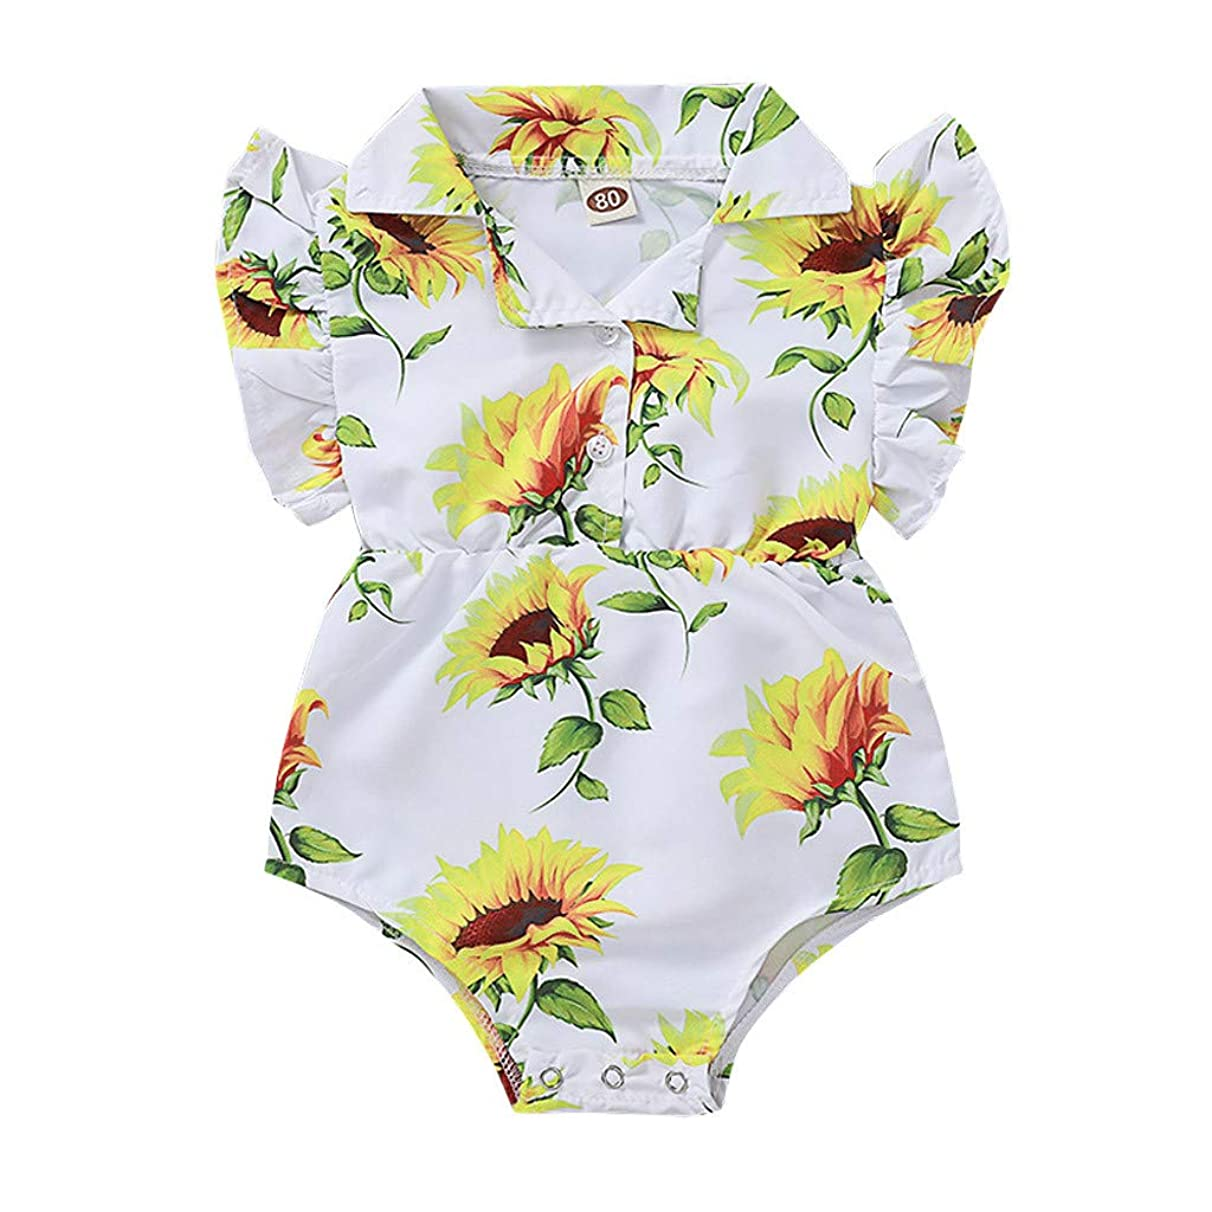 Shusuen Toddler Baby Girl Clothes Sunflower Print Romper Shorts Jumpsuit